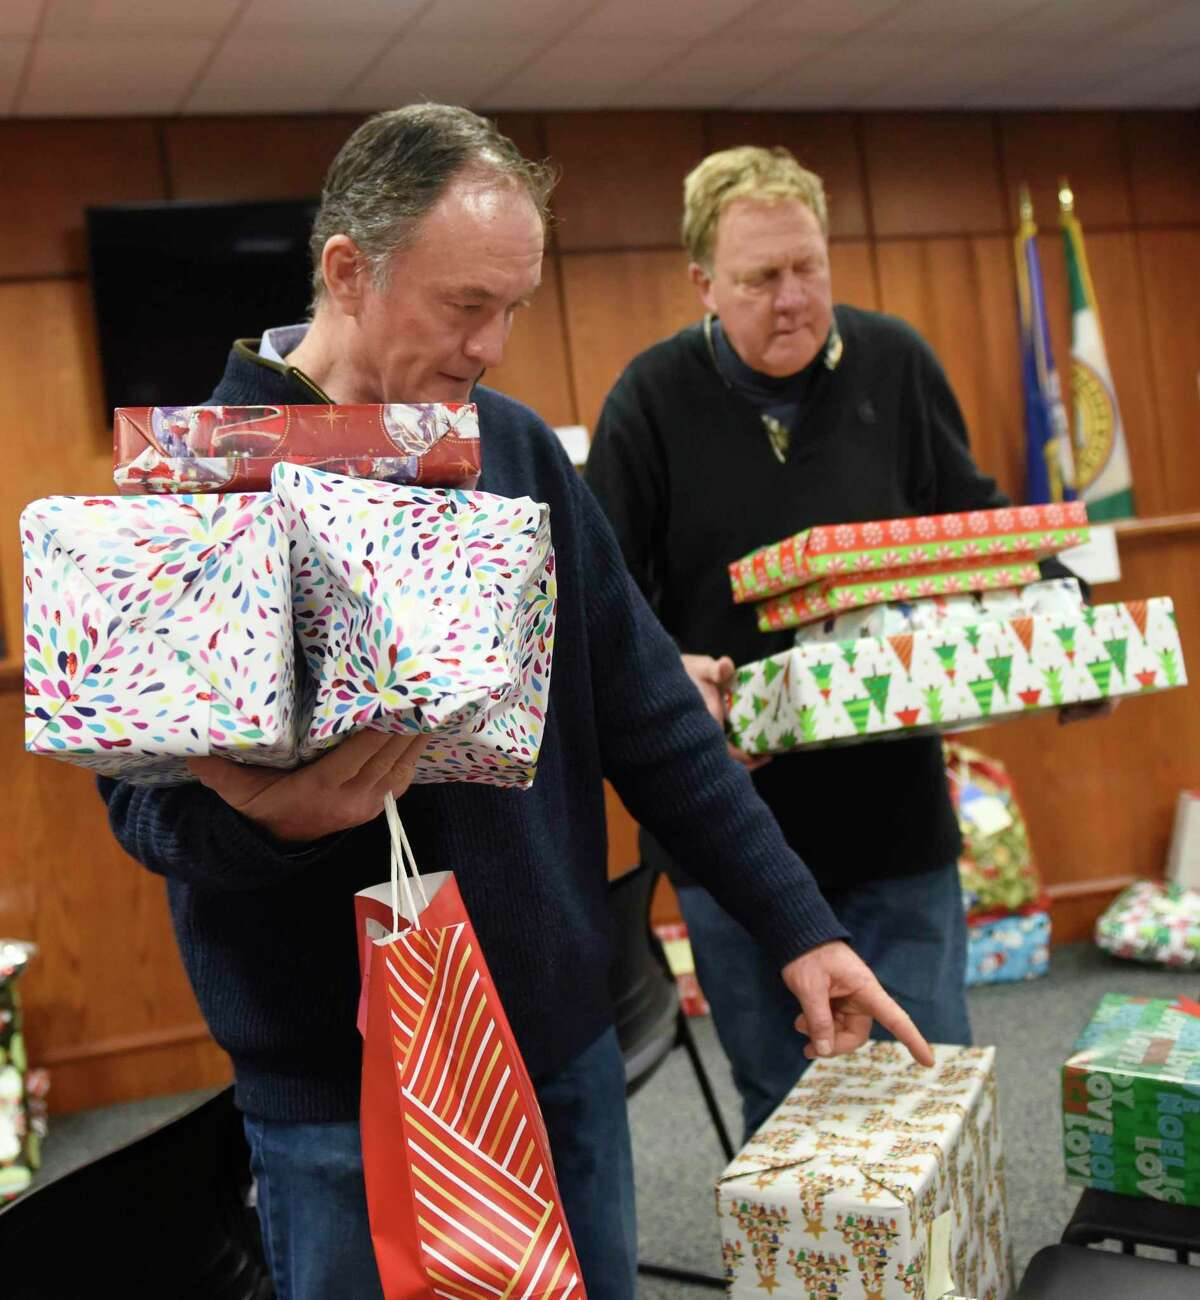 Department of Human Services volunteers Fernando Ruiz, left, and Rod Brush distribute presents for the annual Angel Tree gift giving program at Town Hall in Greenwich, Conn. Wednesday, Dec. 18, 2019. The Department of Human Services program provided 625 holiday gifts for 200 families thanks to donations from six local groups.